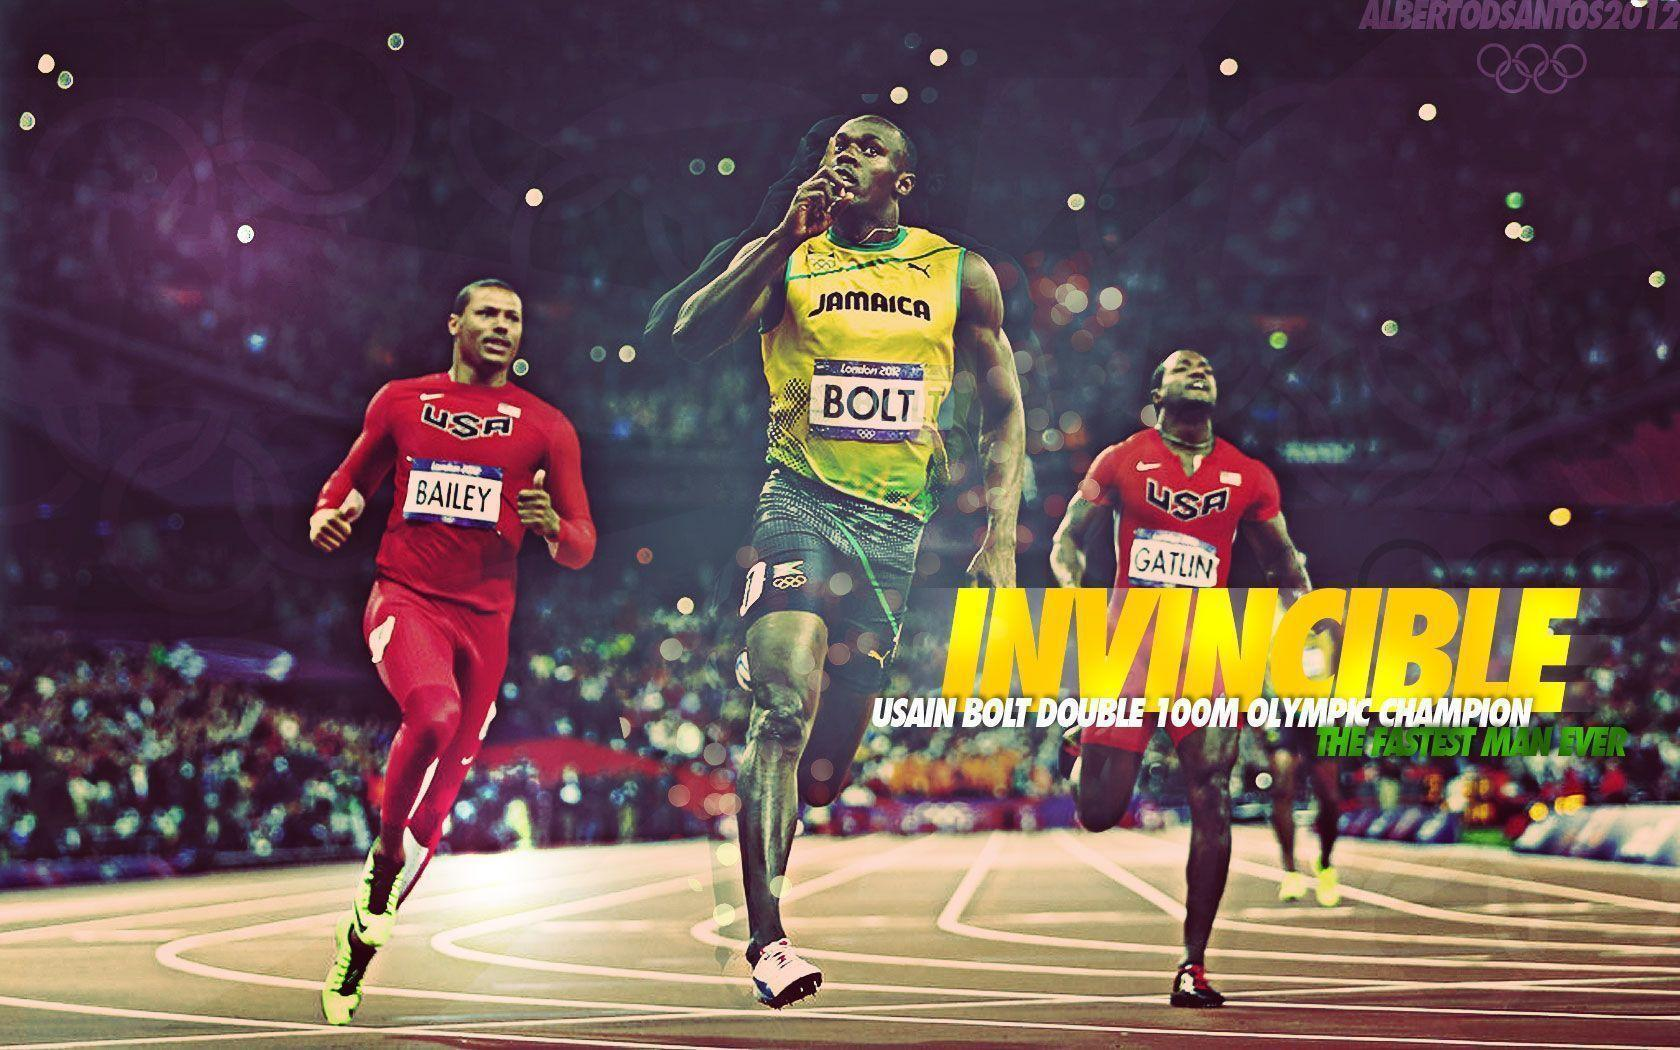 Free Wallpapers - Usain Bolt 2012 1680x1050 wallpaper